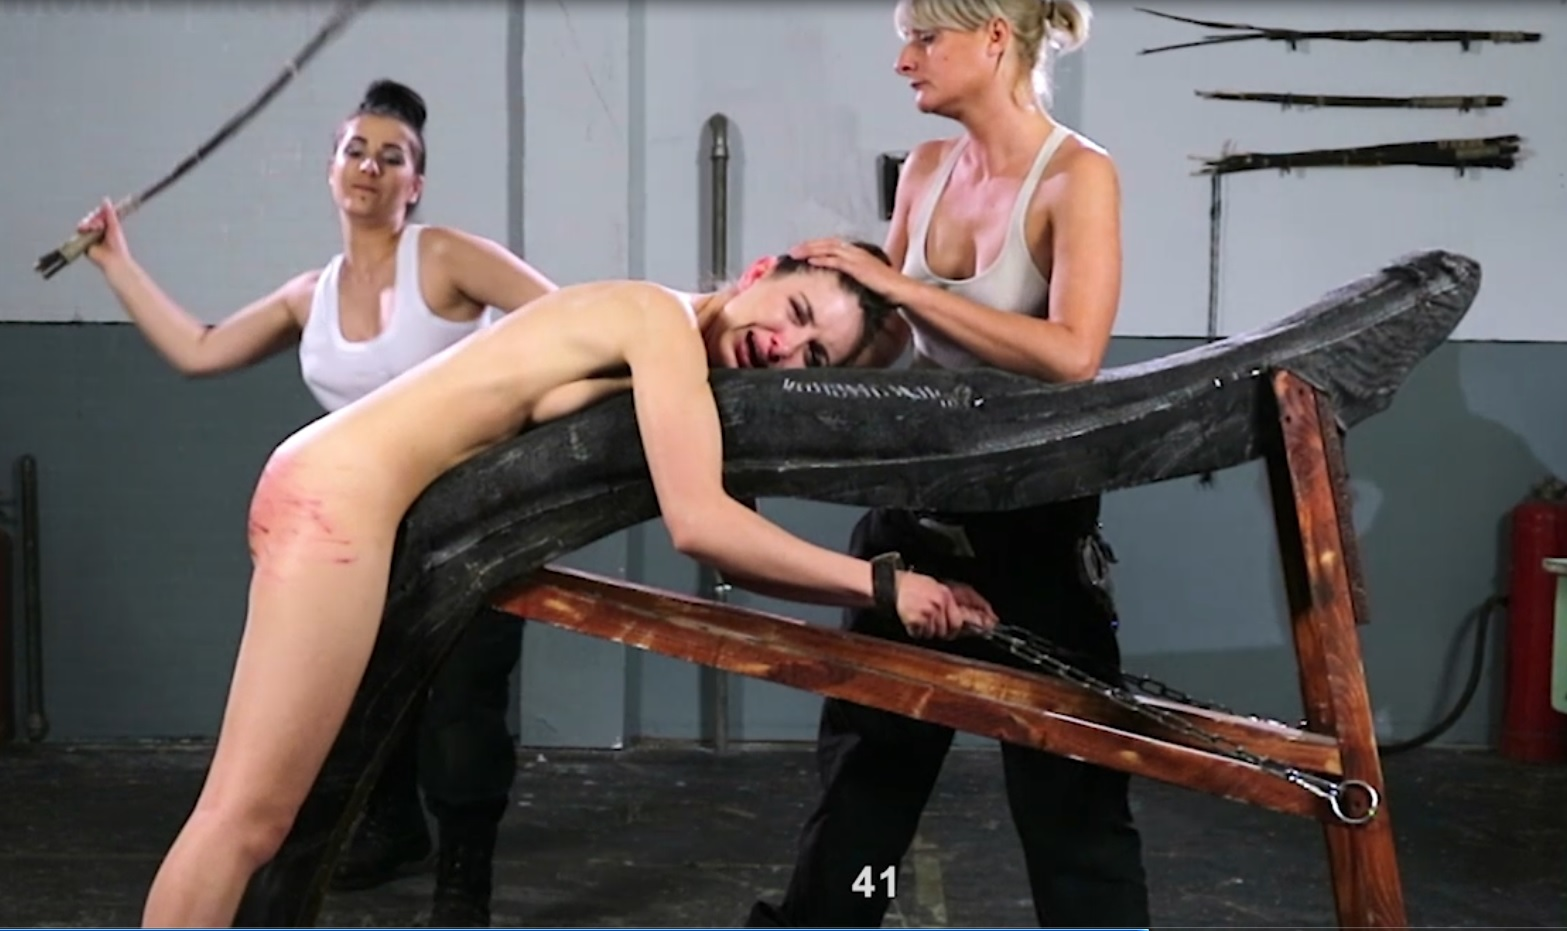 A taste of strict femdom and punishment 8